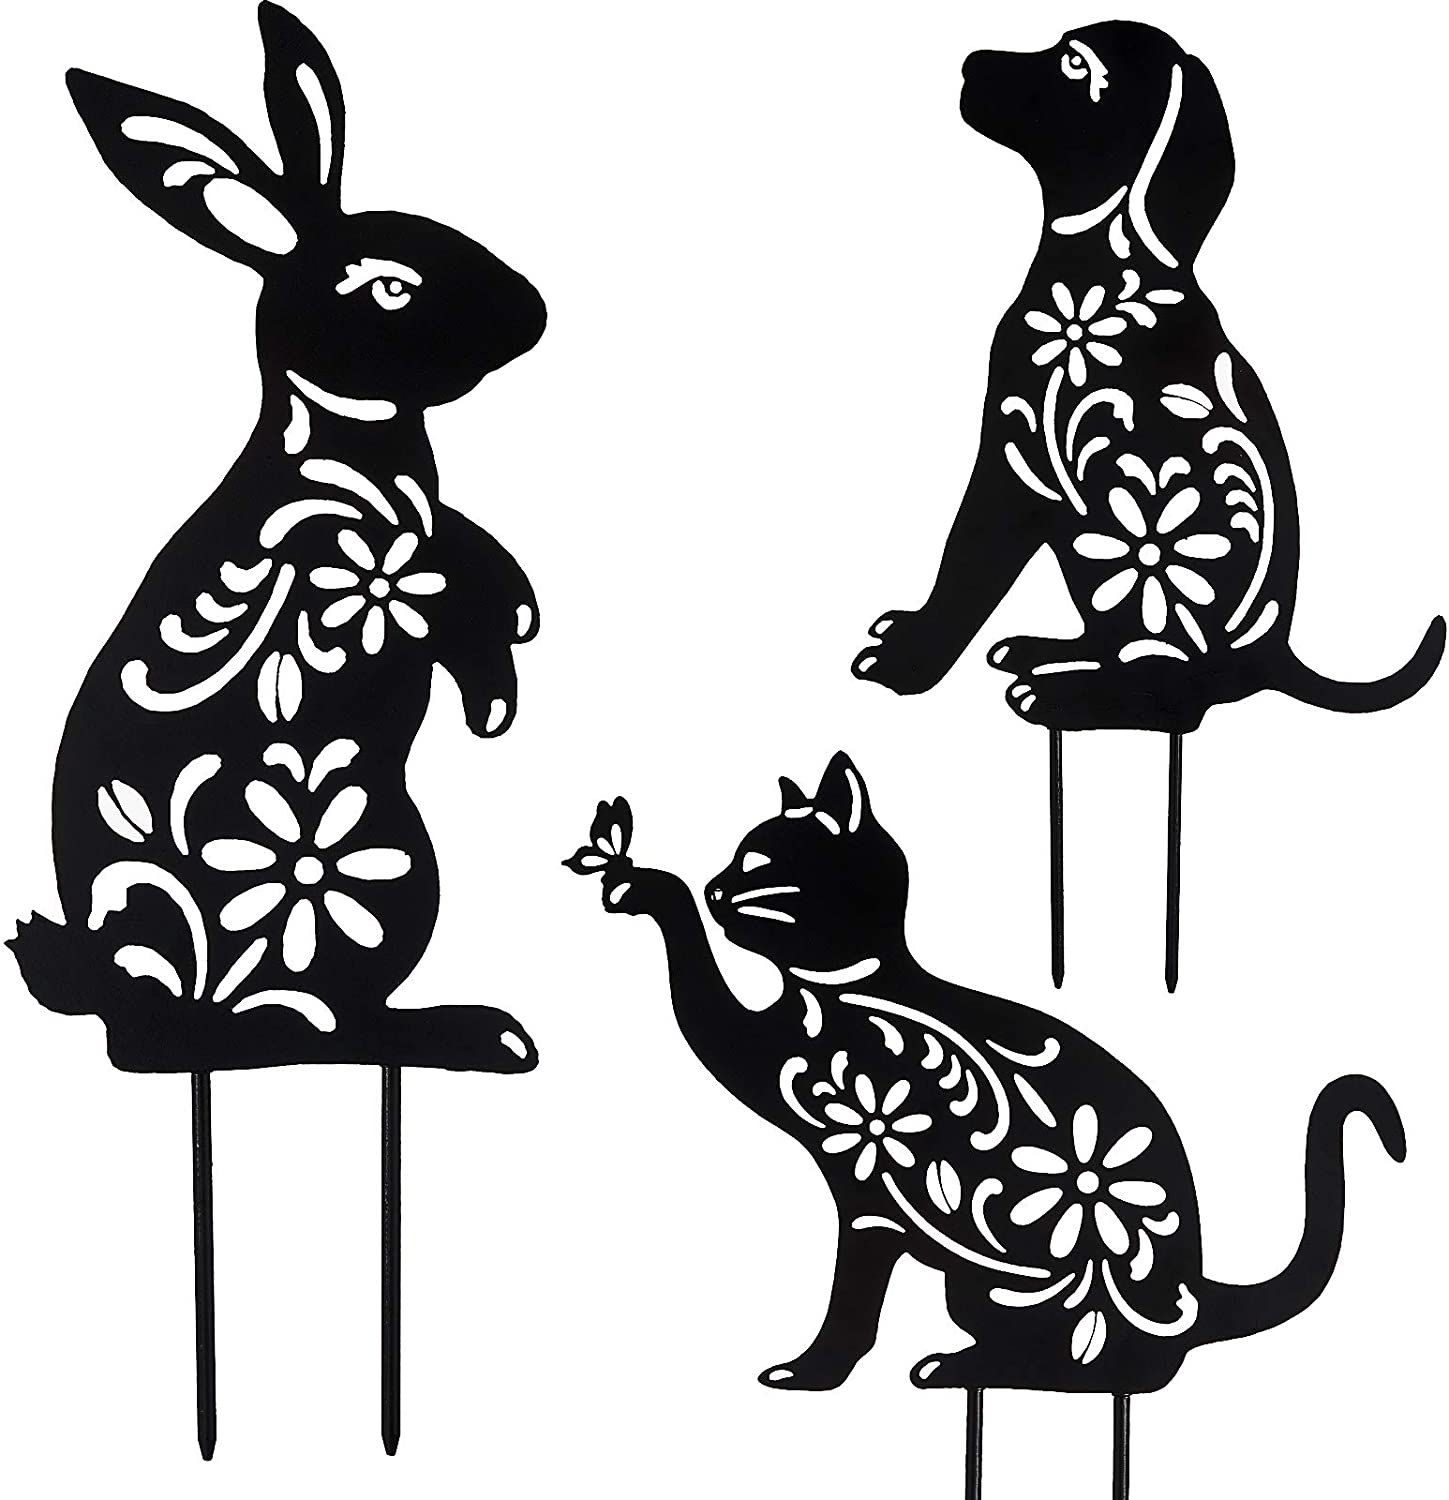 Hotop 3 Pieces Animal Silhouette Garden Stake Black Puppy Dog Bunny and Cat Silhouette Stake Metal Animal Shape Decoration for Yard Lawn Garden Outdoor Decoration